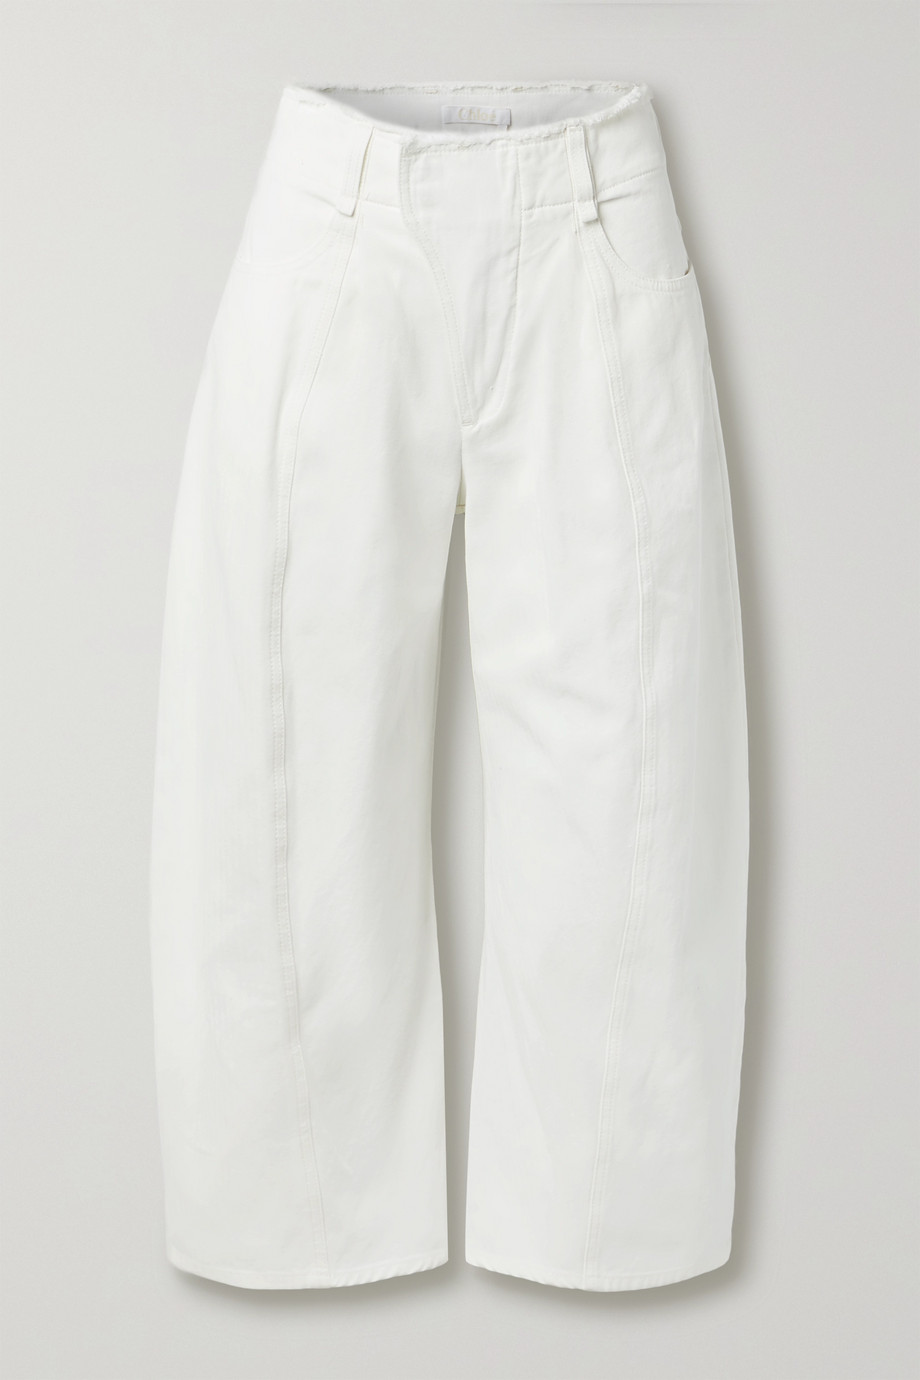 Chloé Frayed high-rise wide-leg jeans